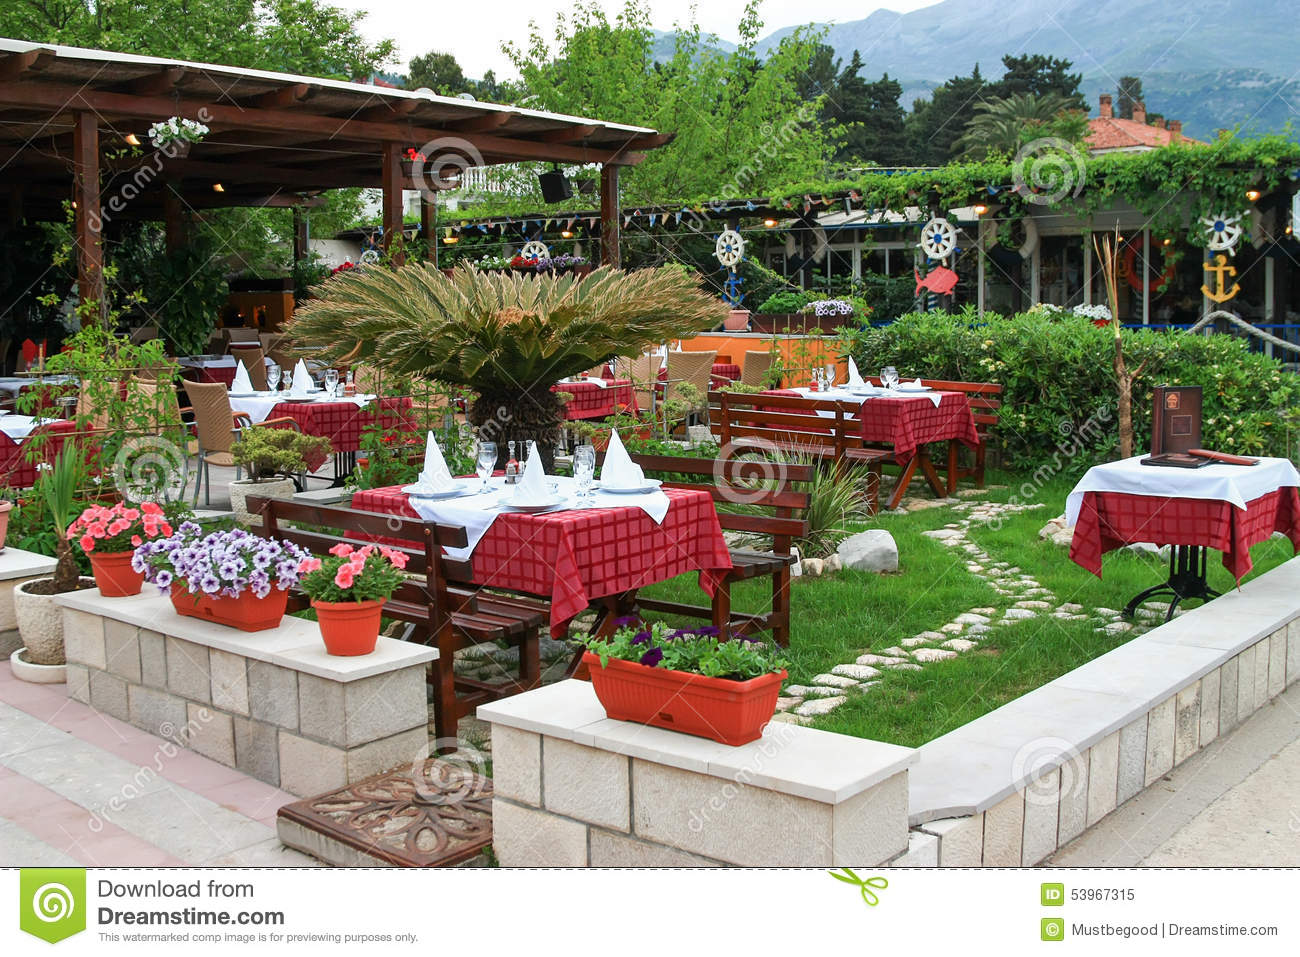 Flowers Tables And Chairs In Outdoor Restaurant Terrace Stock Image Image Of Green Outdoor 53967315